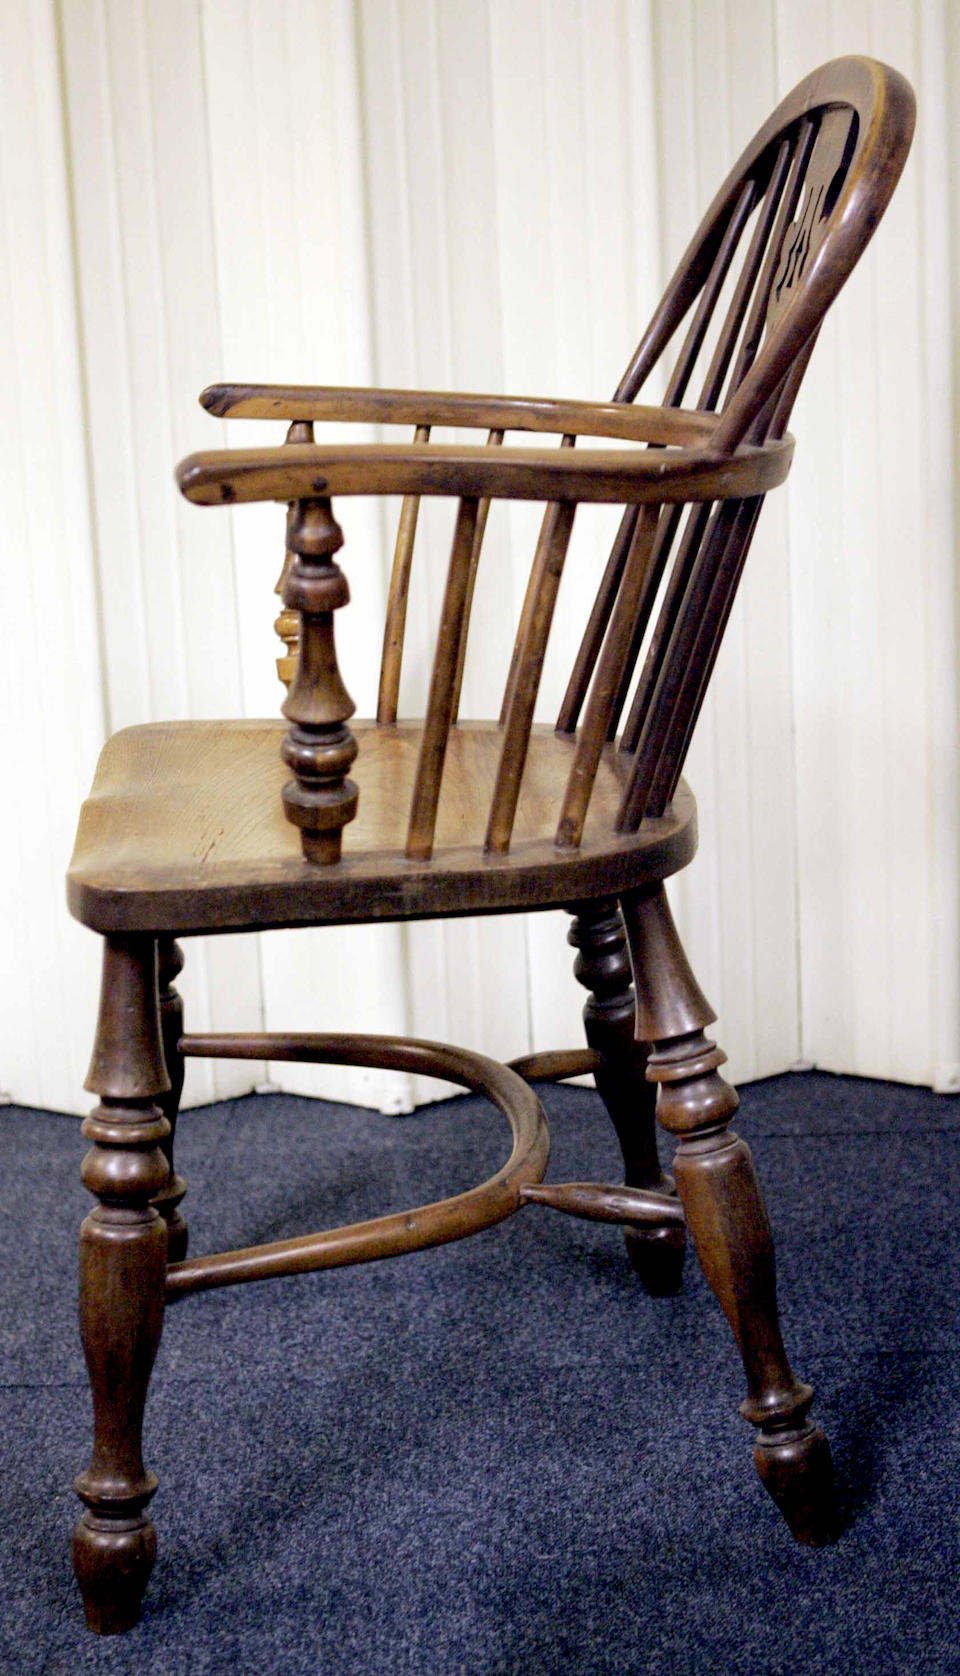 A matched pair of mid 19th century ash elm and yew wood windsor armchairs